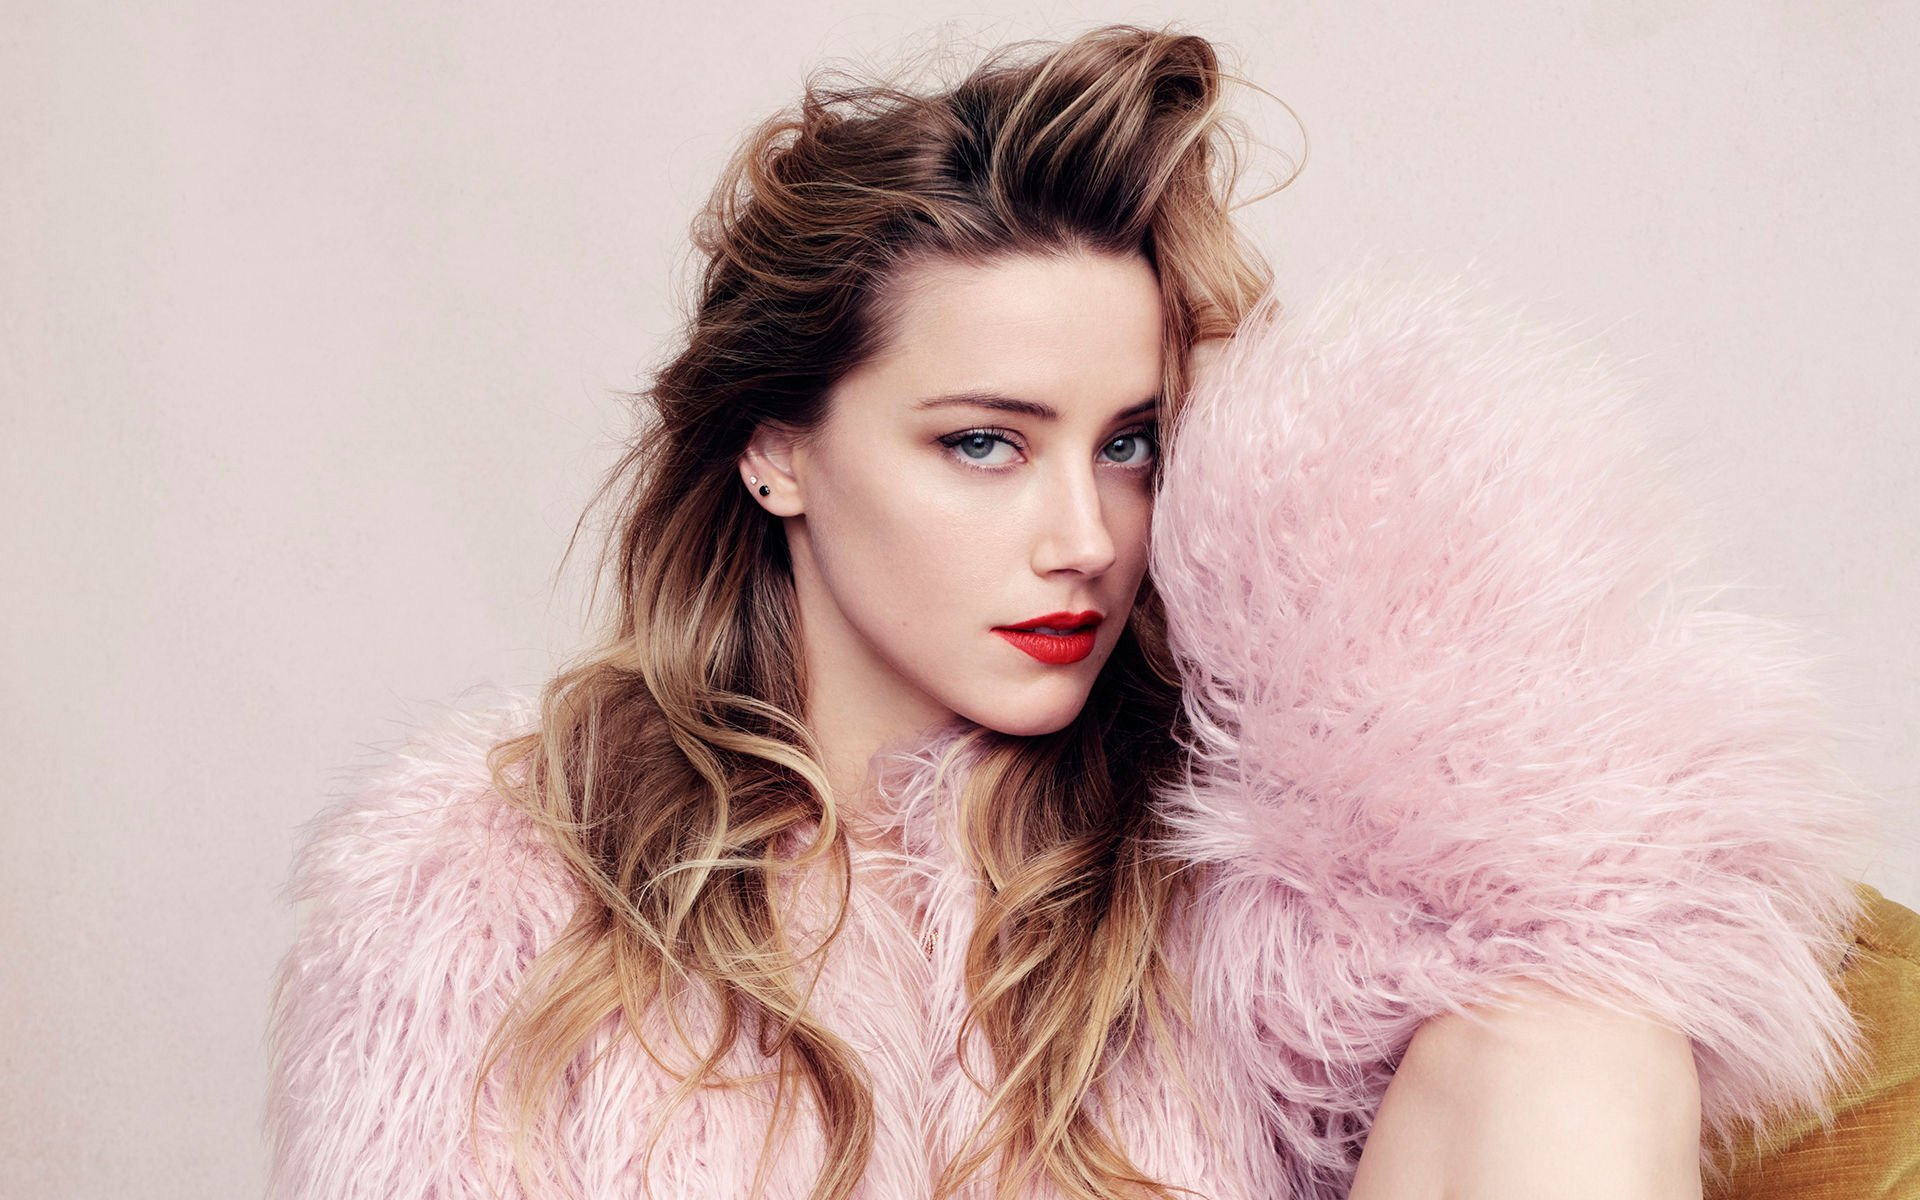 Amber Heard Wallpapers and Background Images   stmednet 1920x1200